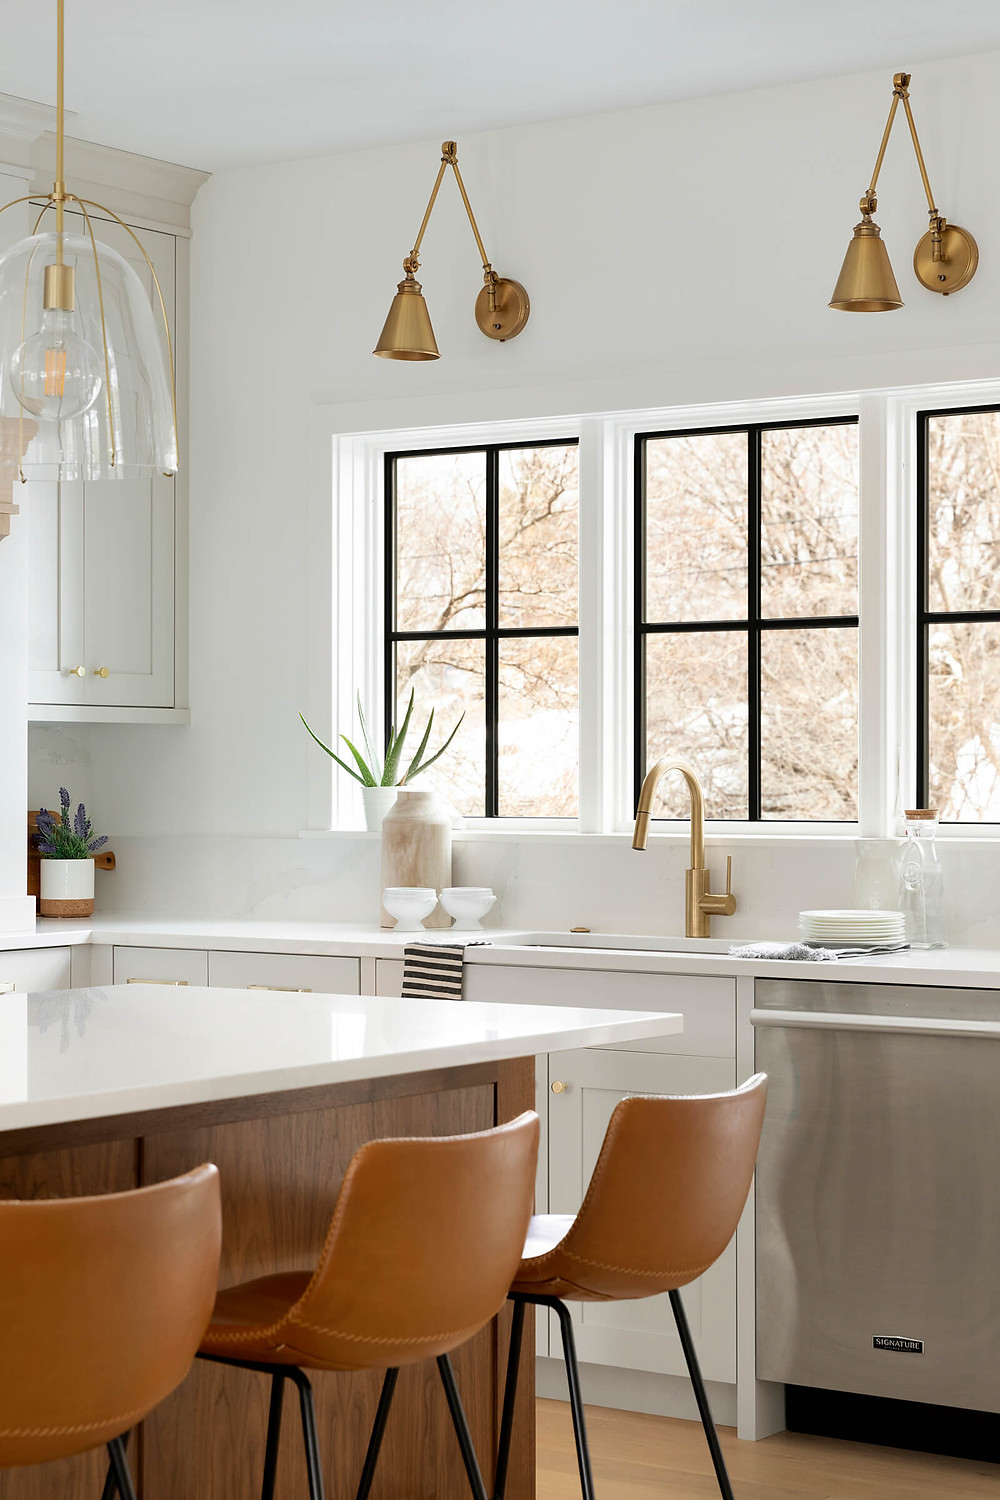 Black windows, painted light cabinetry with gold fixtures.